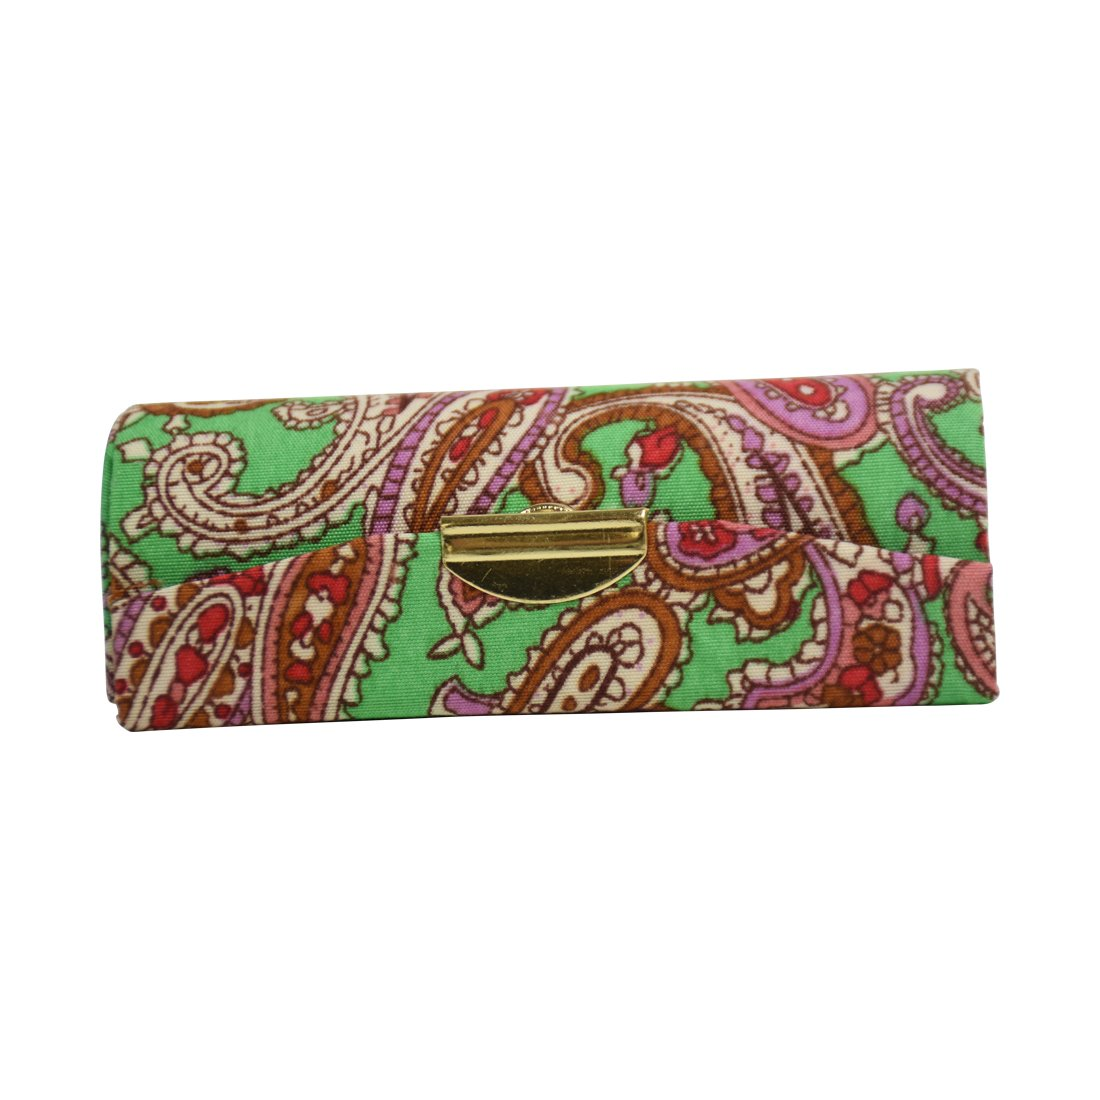 Paisley Patterned Ladies Lipstick Case with Mirror Purse Lip Stick Holder - Green